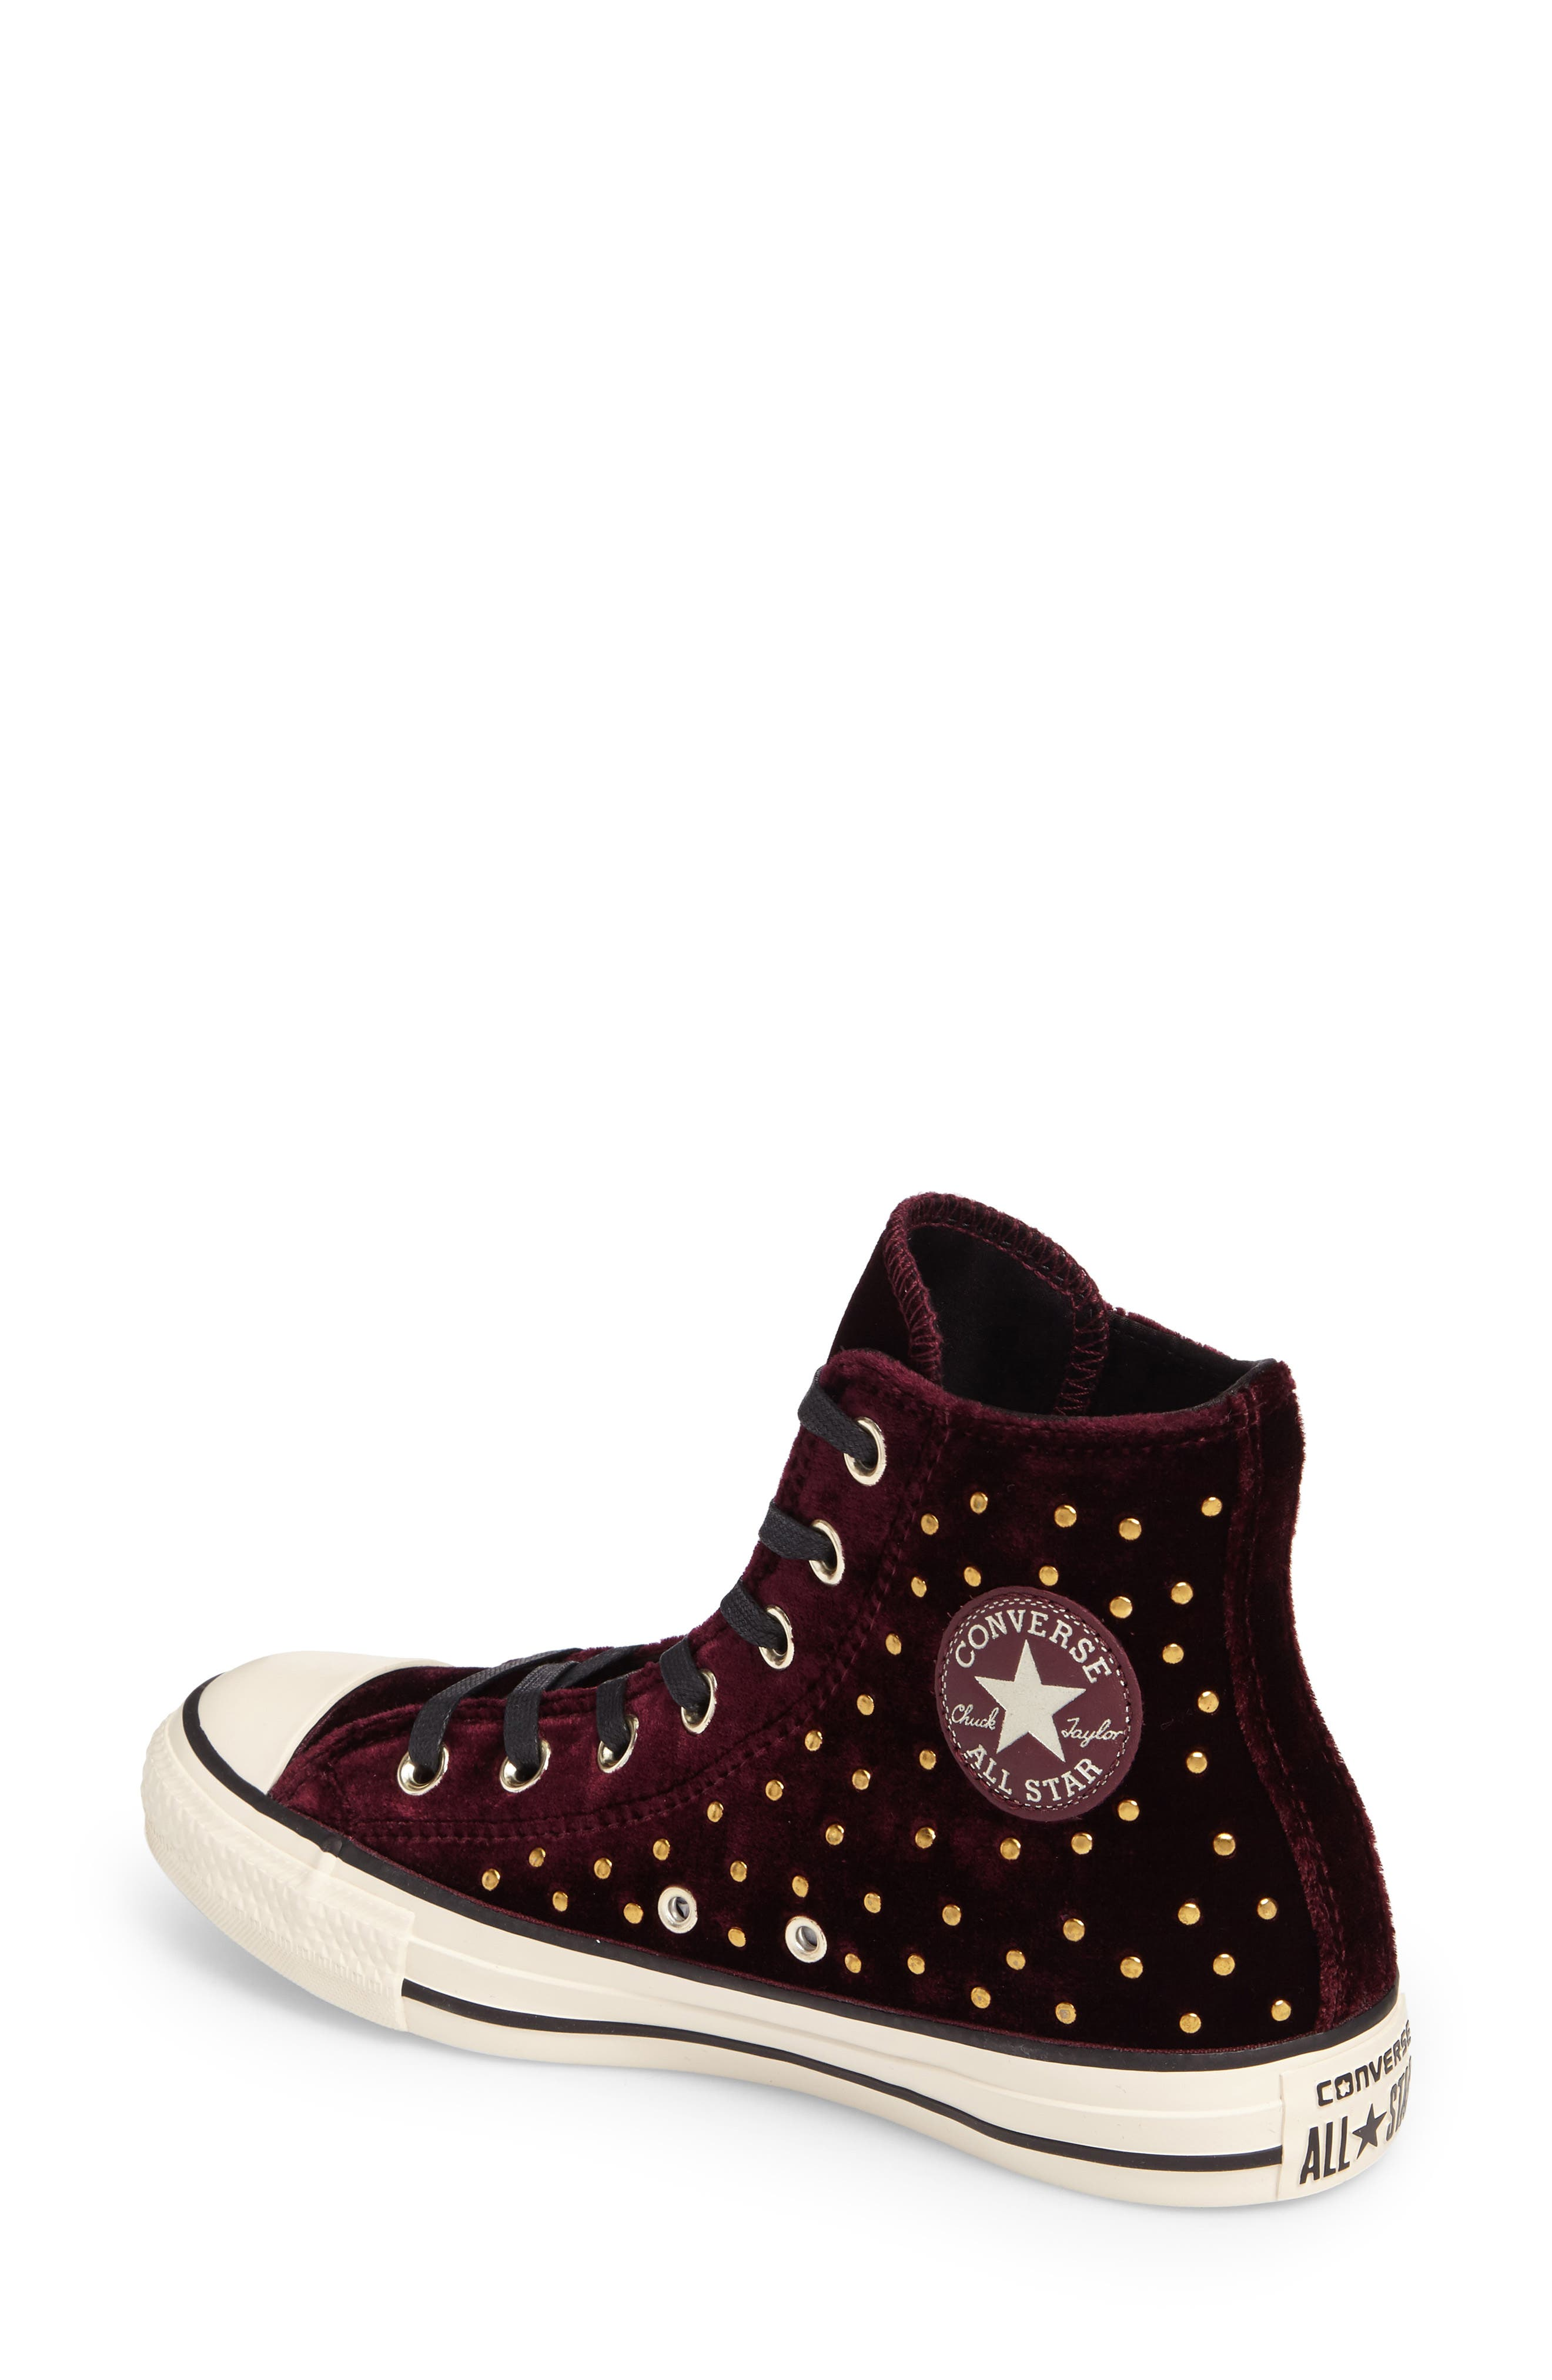 Chuck Taylor<sup>®</sup> All Star<sup>®</sup> Studded High Top Sneakers,                             Alternate thumbnail 6, color,